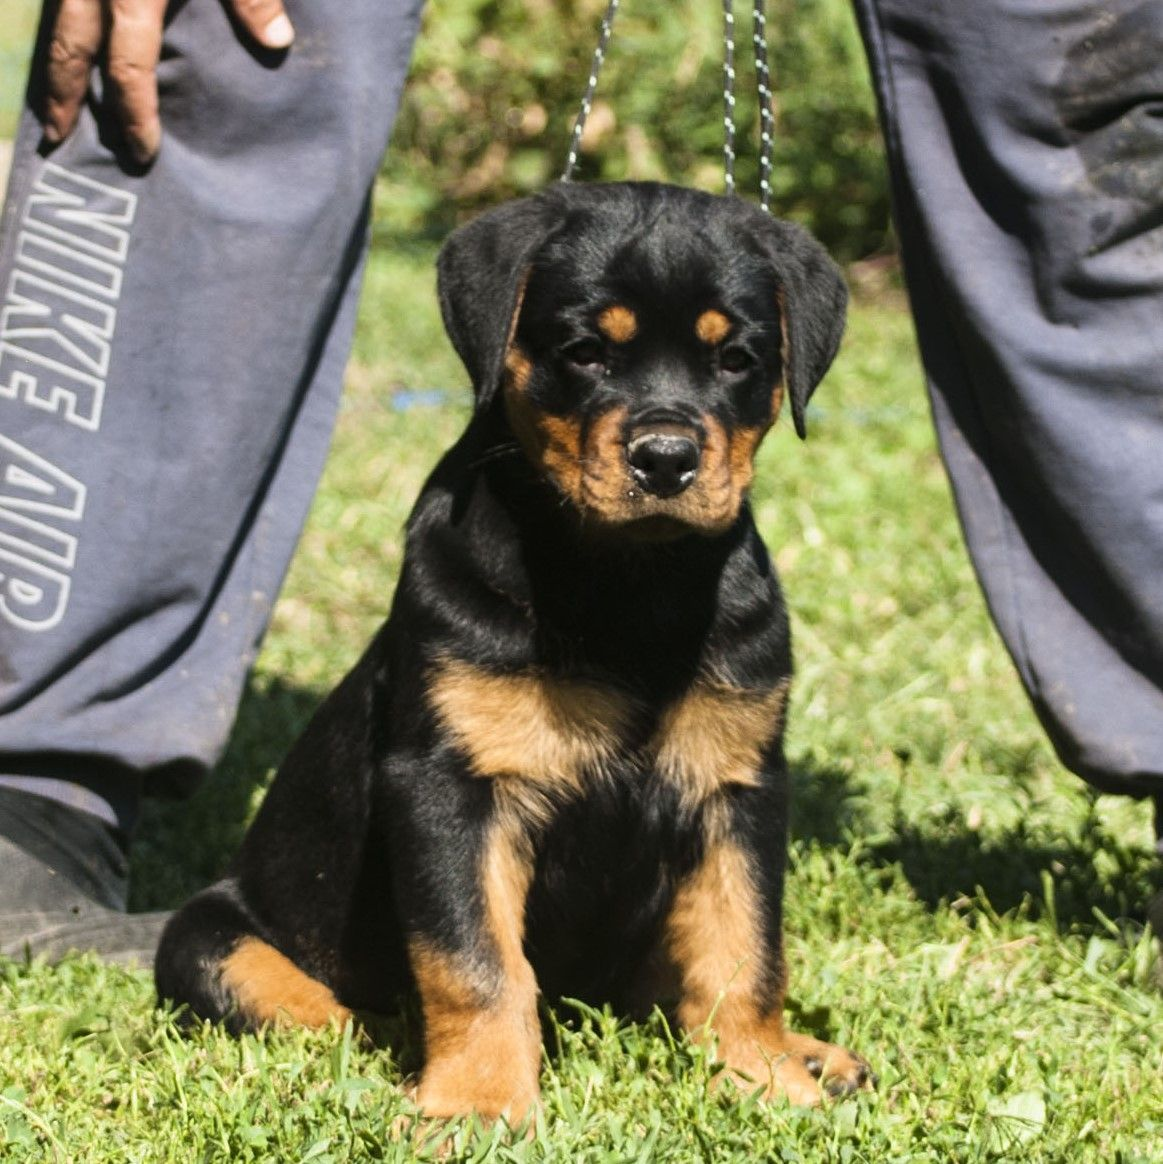 Female Rottweiler Puppy For Sale Rottweilerpuppies Rottweilerfemale Rottweiler Puppies For Sale Rottweiler Puppies Rottweiler